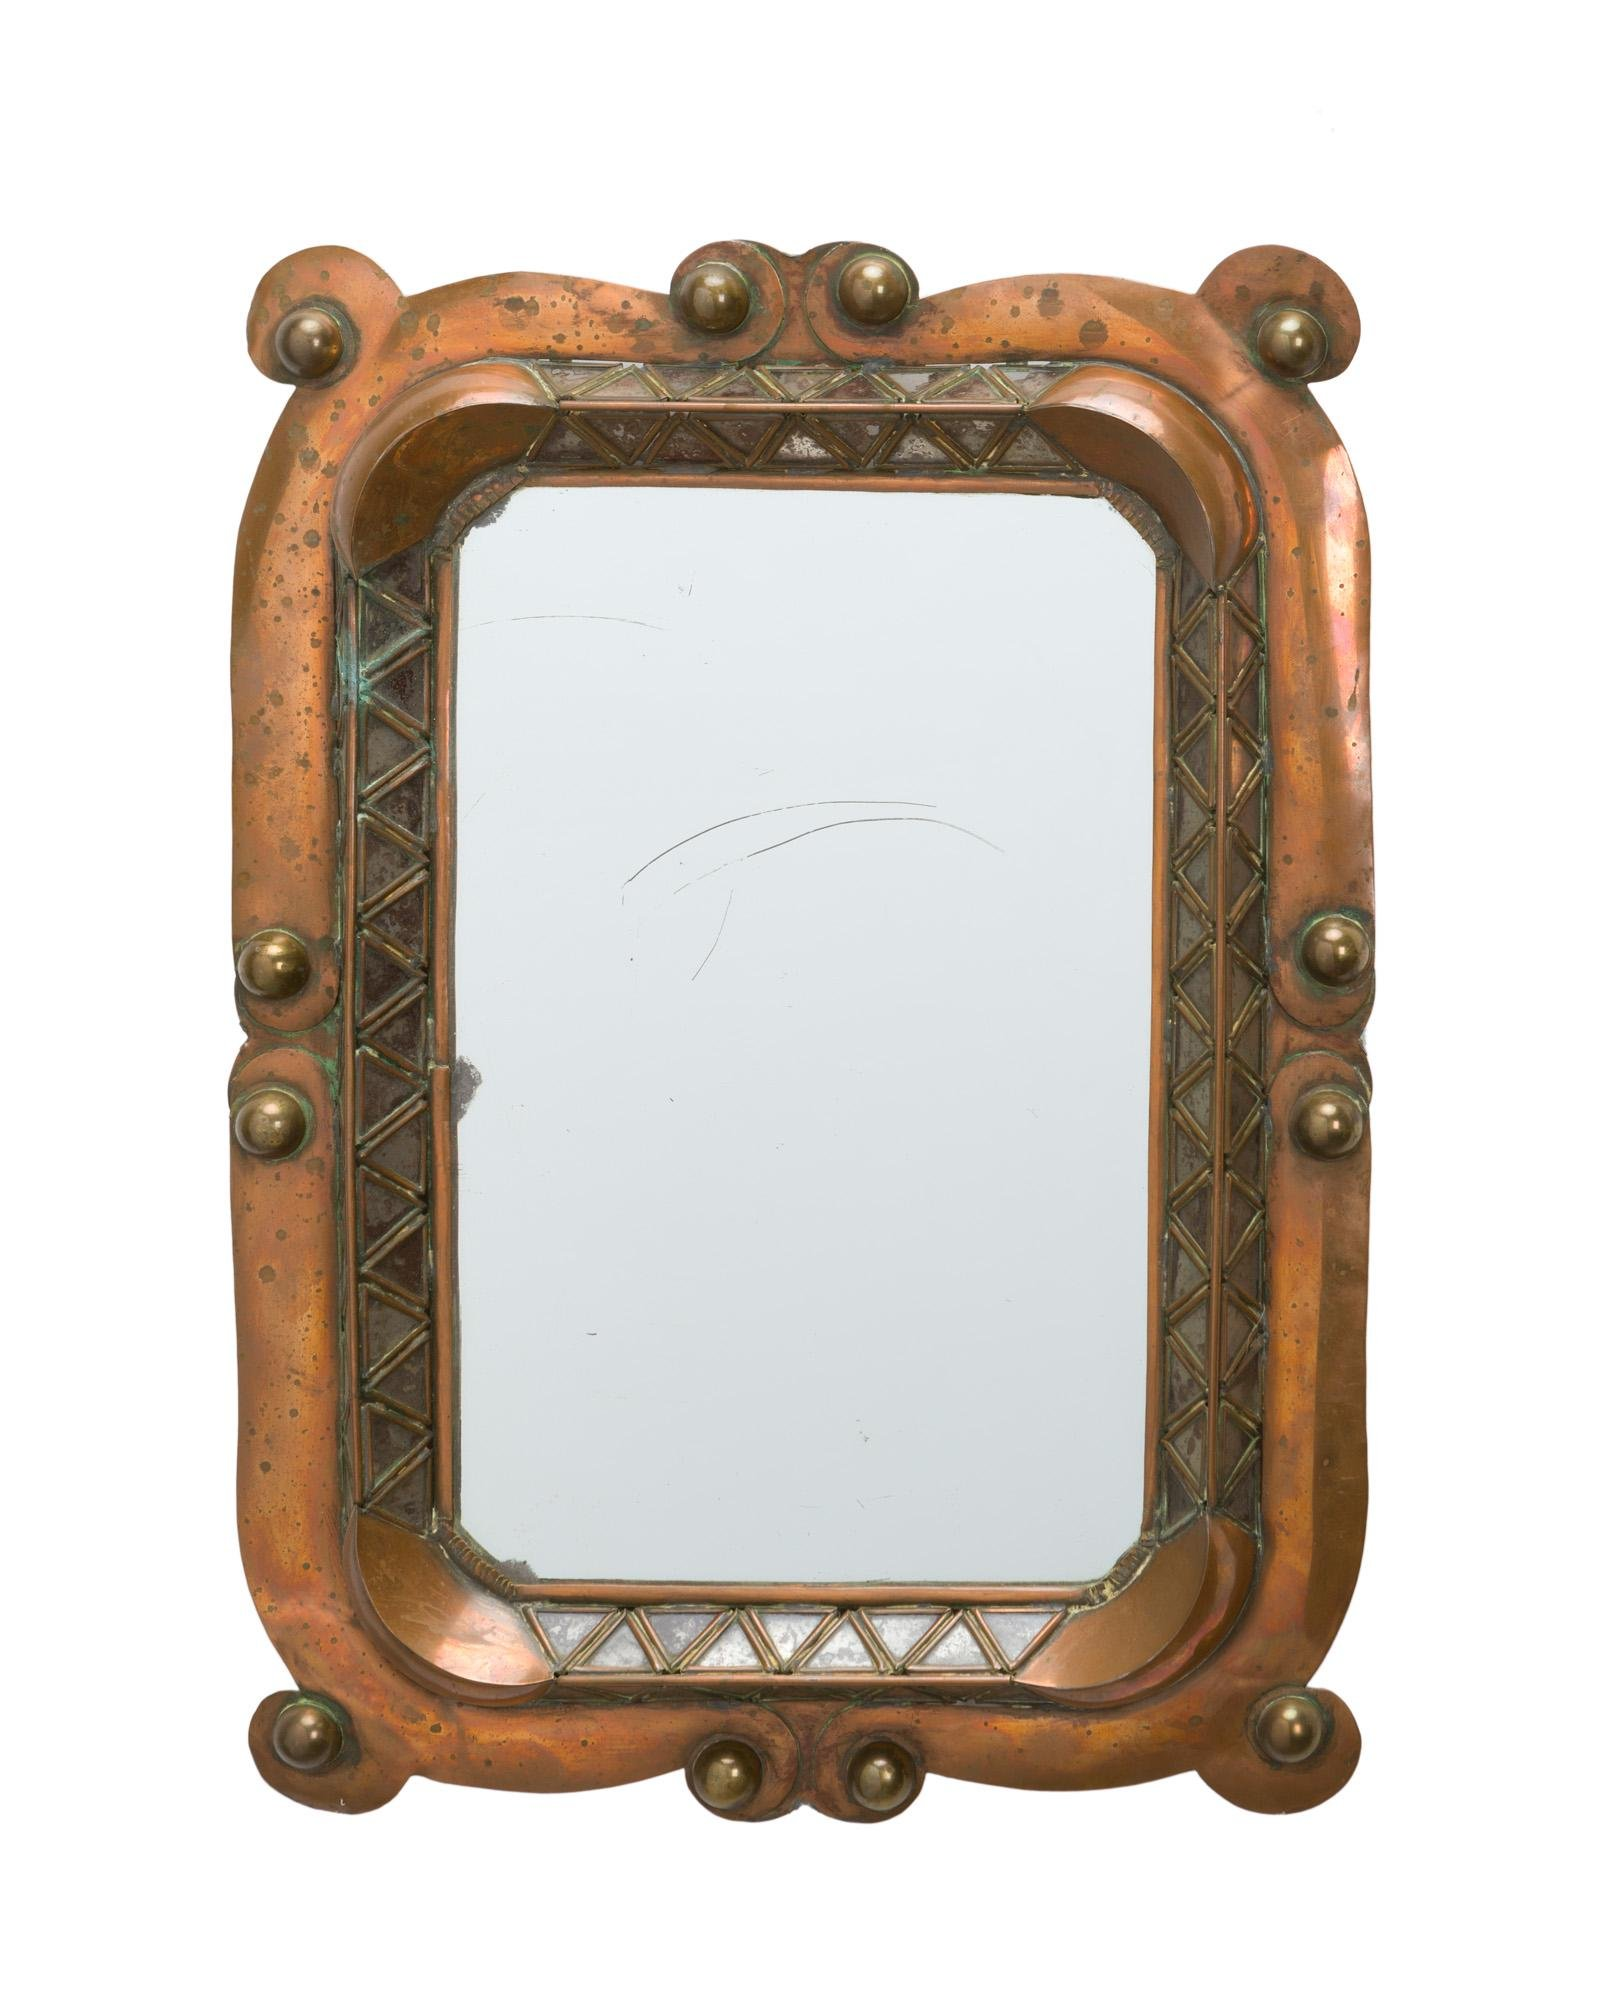 A Mexican copper and brass wall mirror